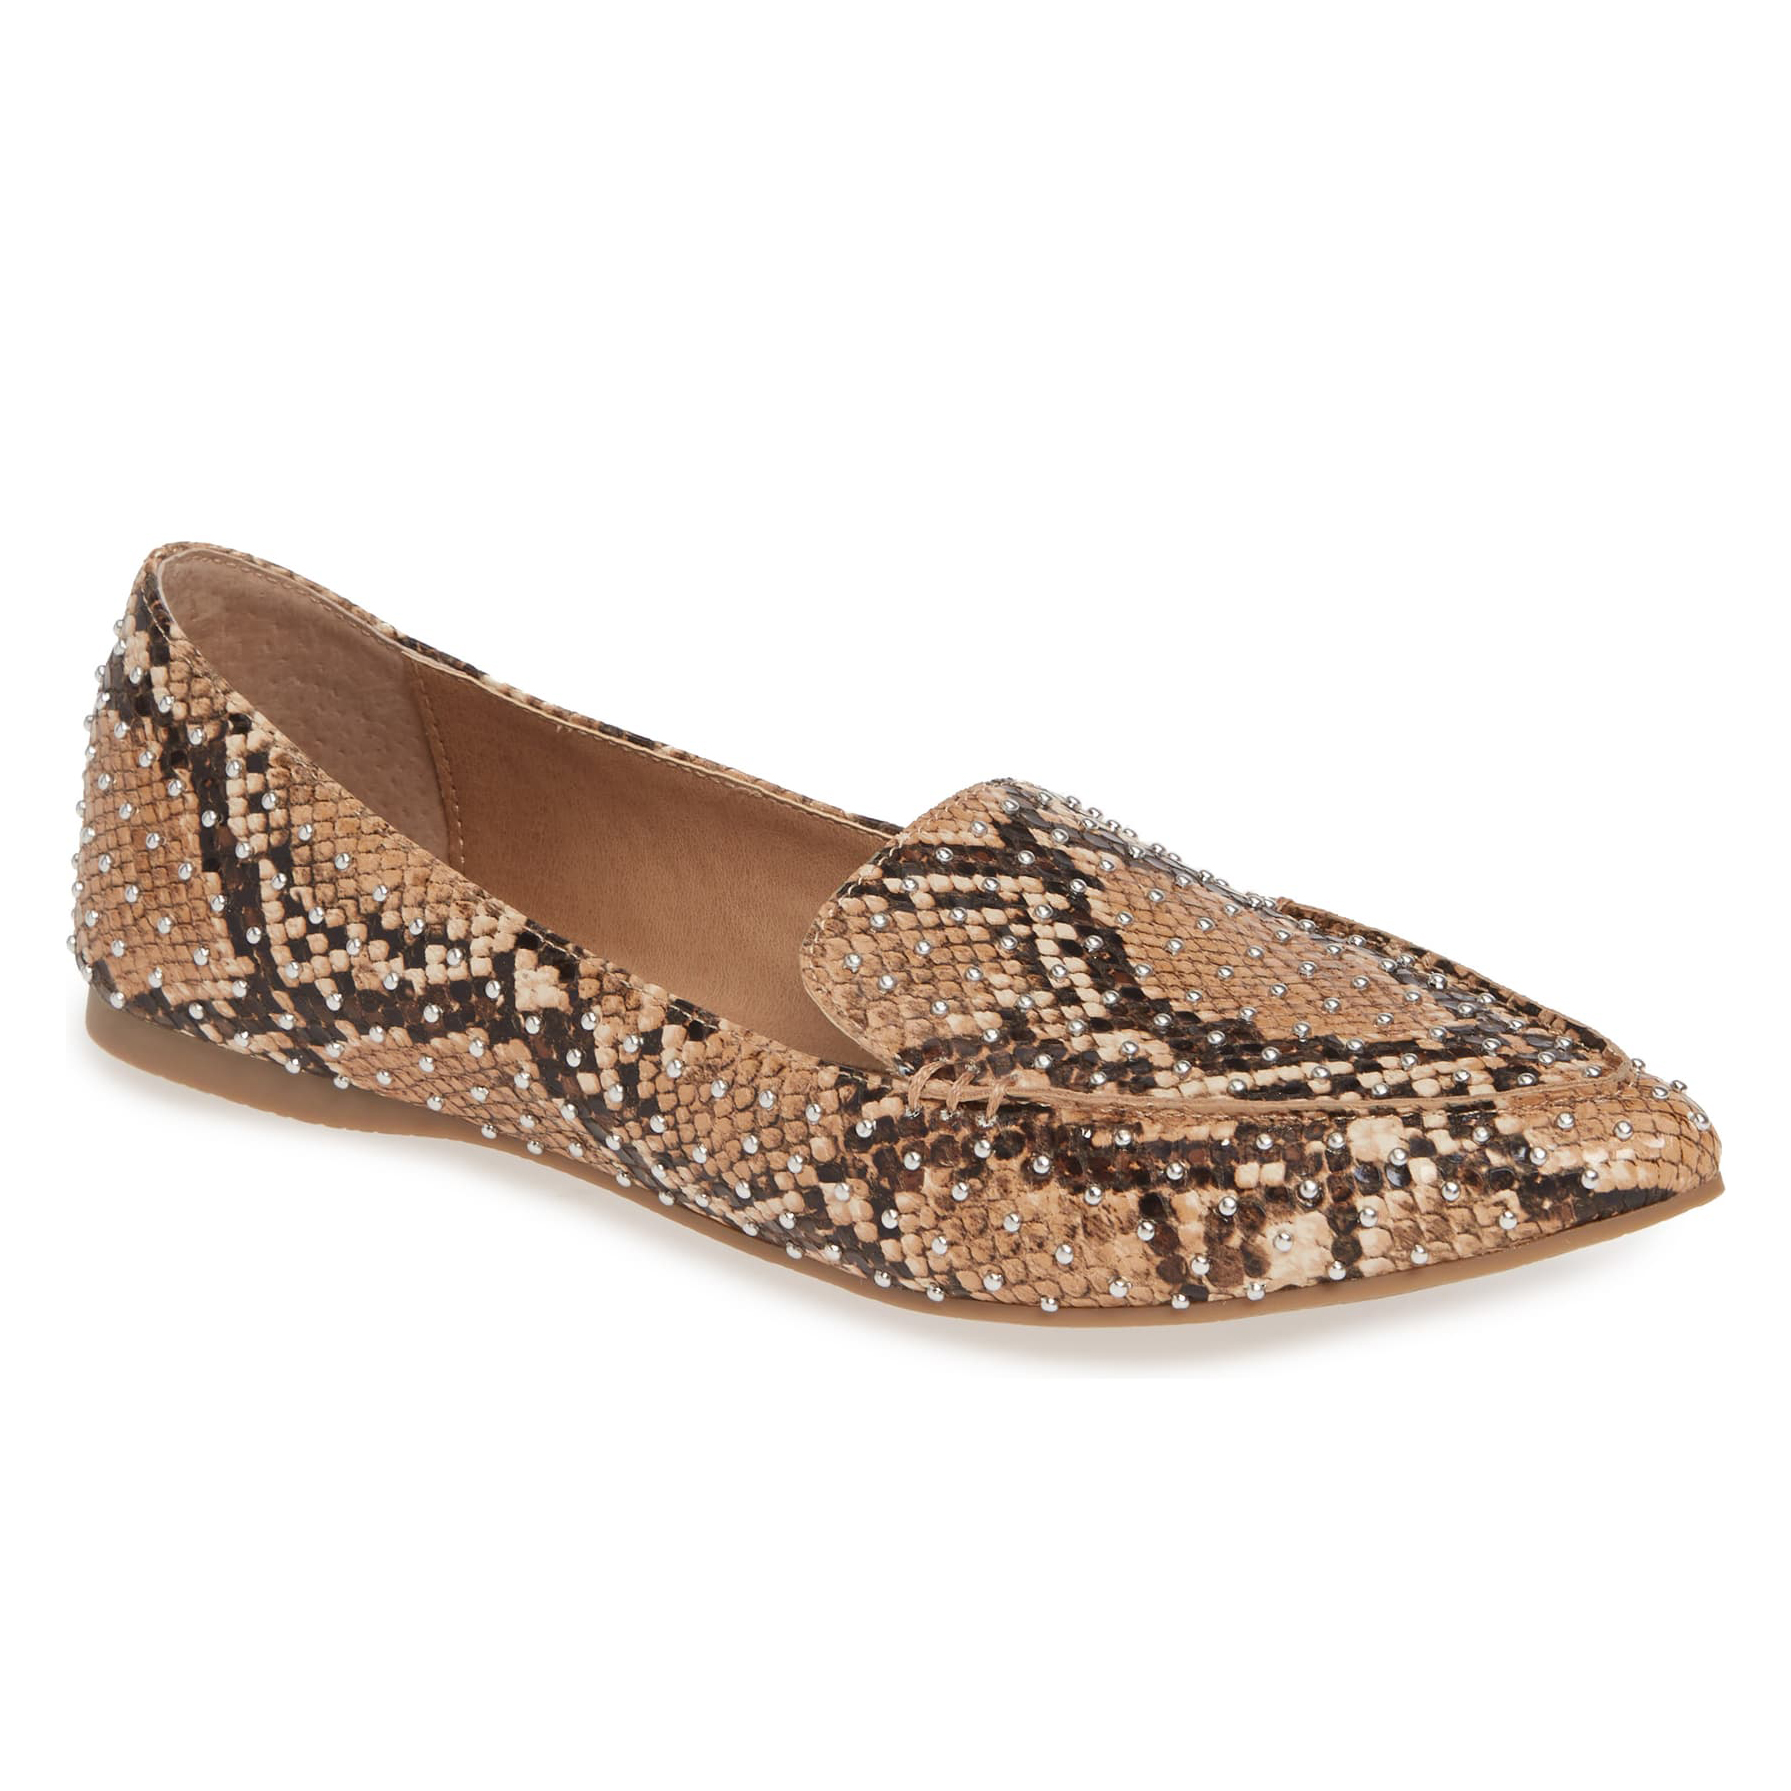 Steve Madden Feather Studded Loafer Tan Snake Print